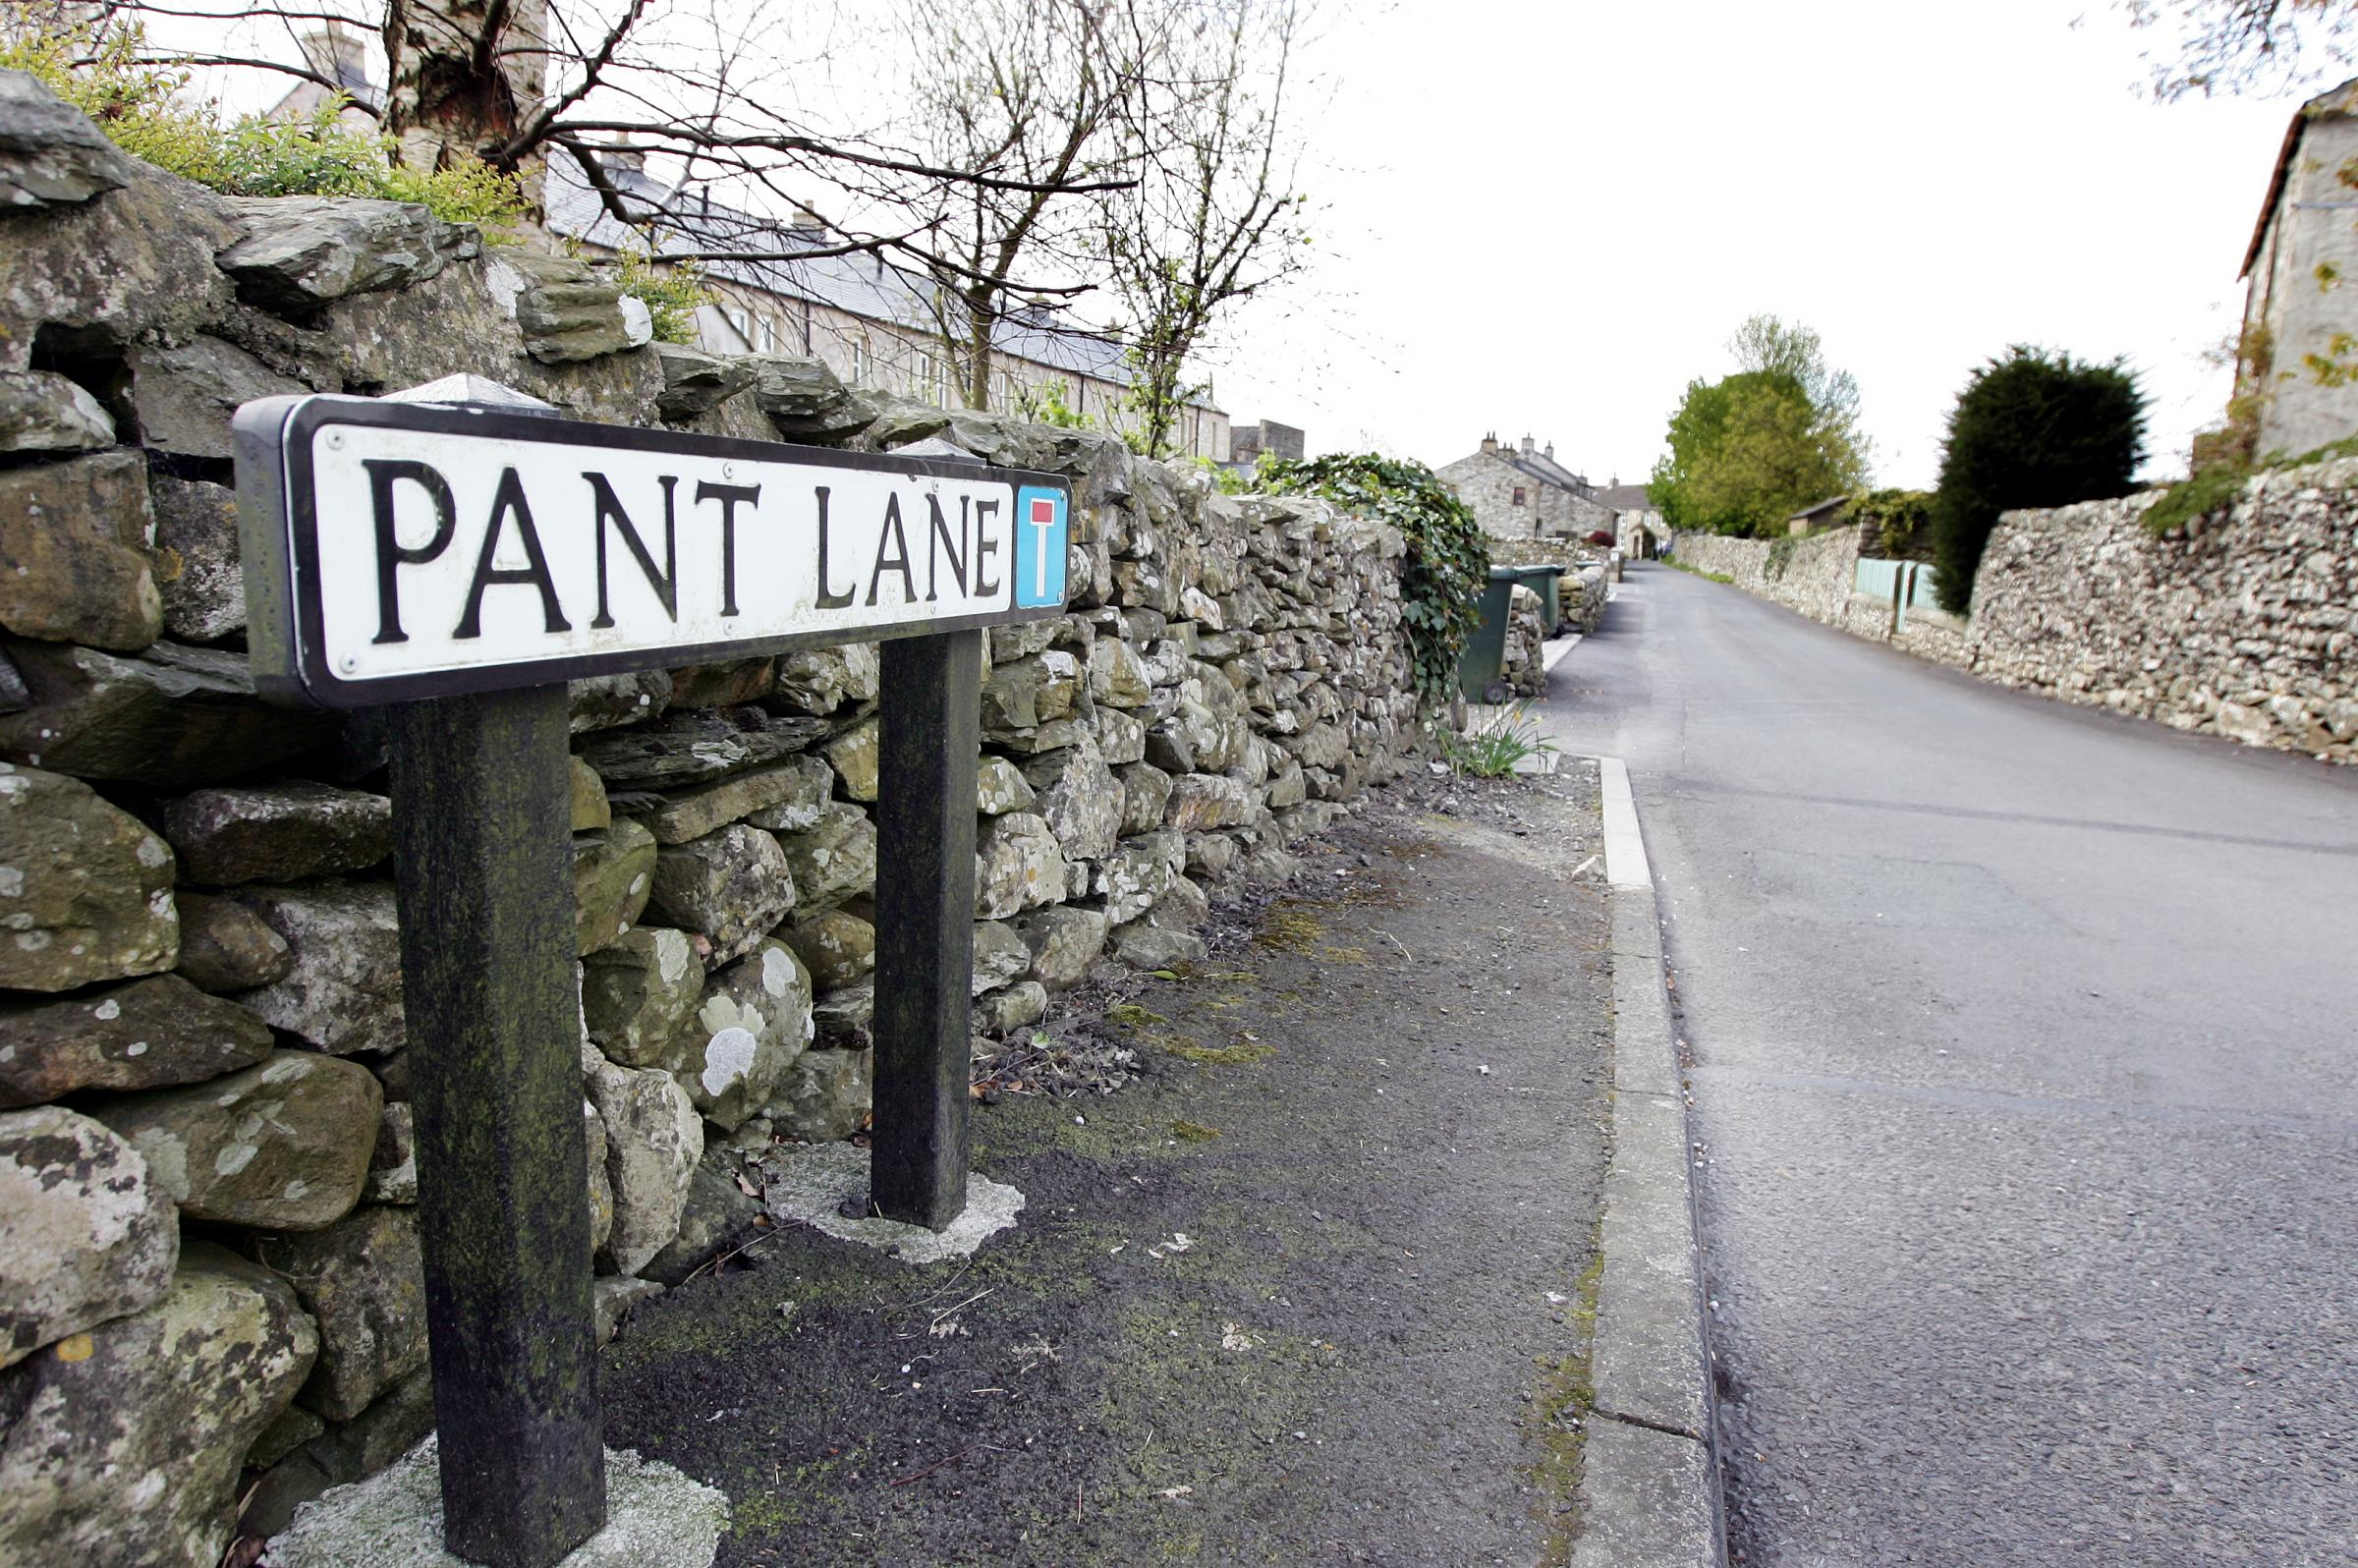 The homes have been built on Pant Lane, Austwick